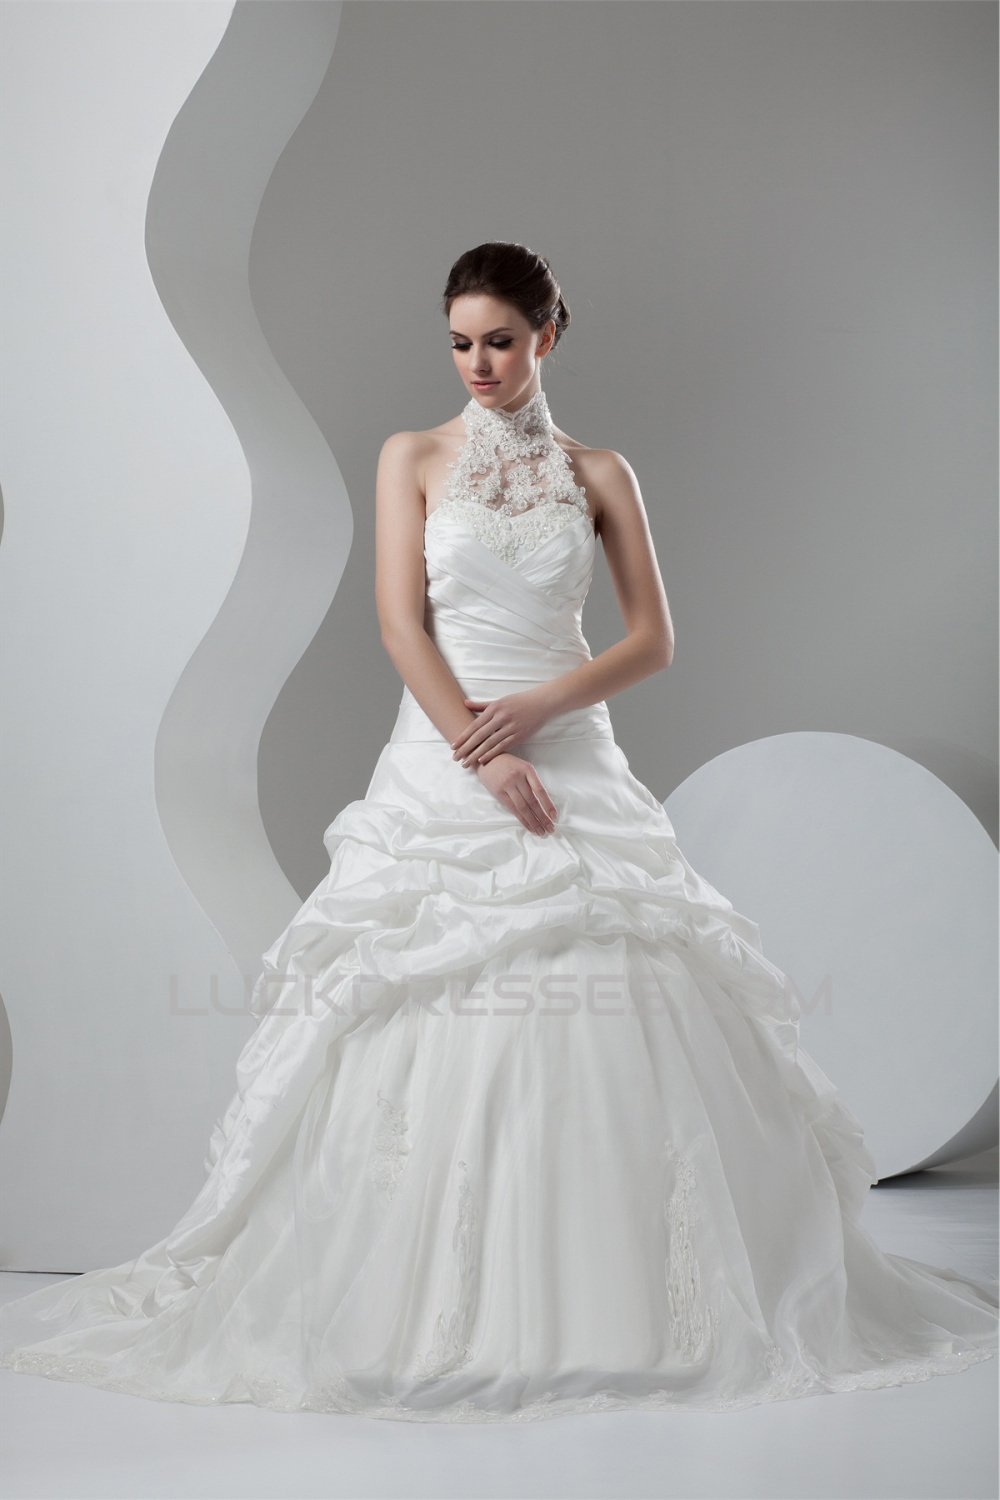 Organza Taffeta Lace High-Neck Ball Gown Sleeveless Wedding Dresses ...